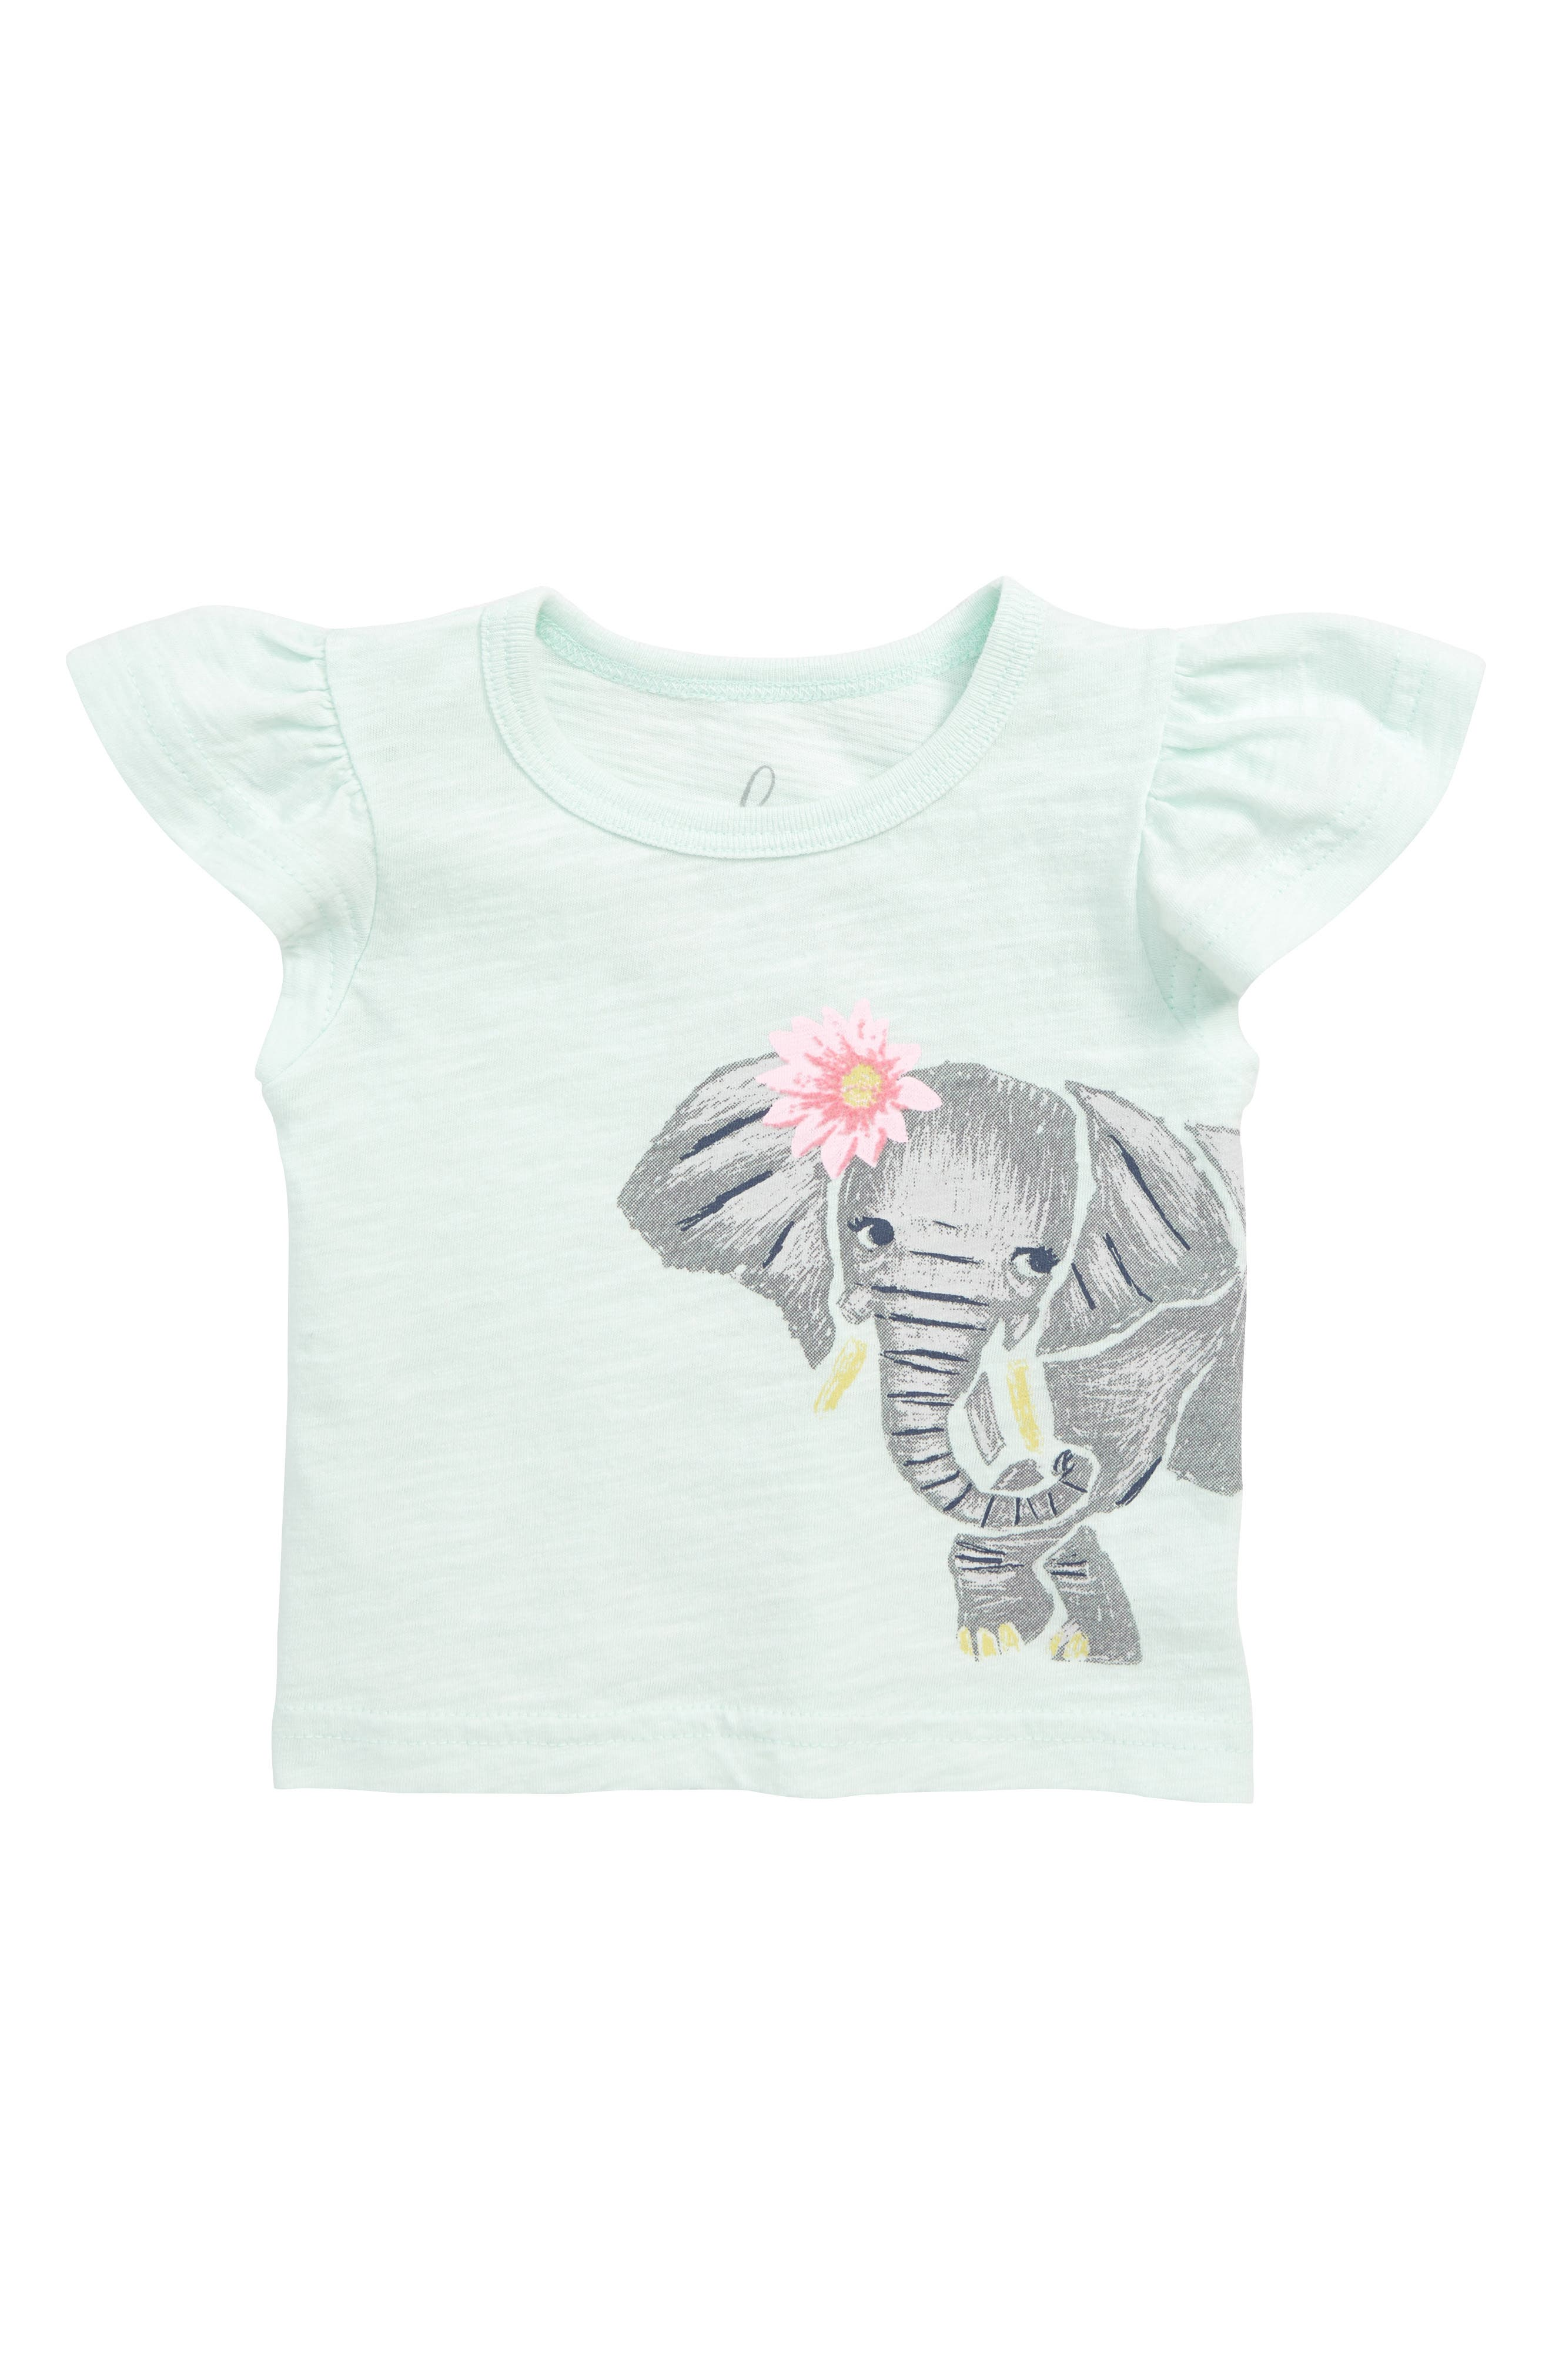 Choose Friends Graphic Tee,                         Main,                         color, 137